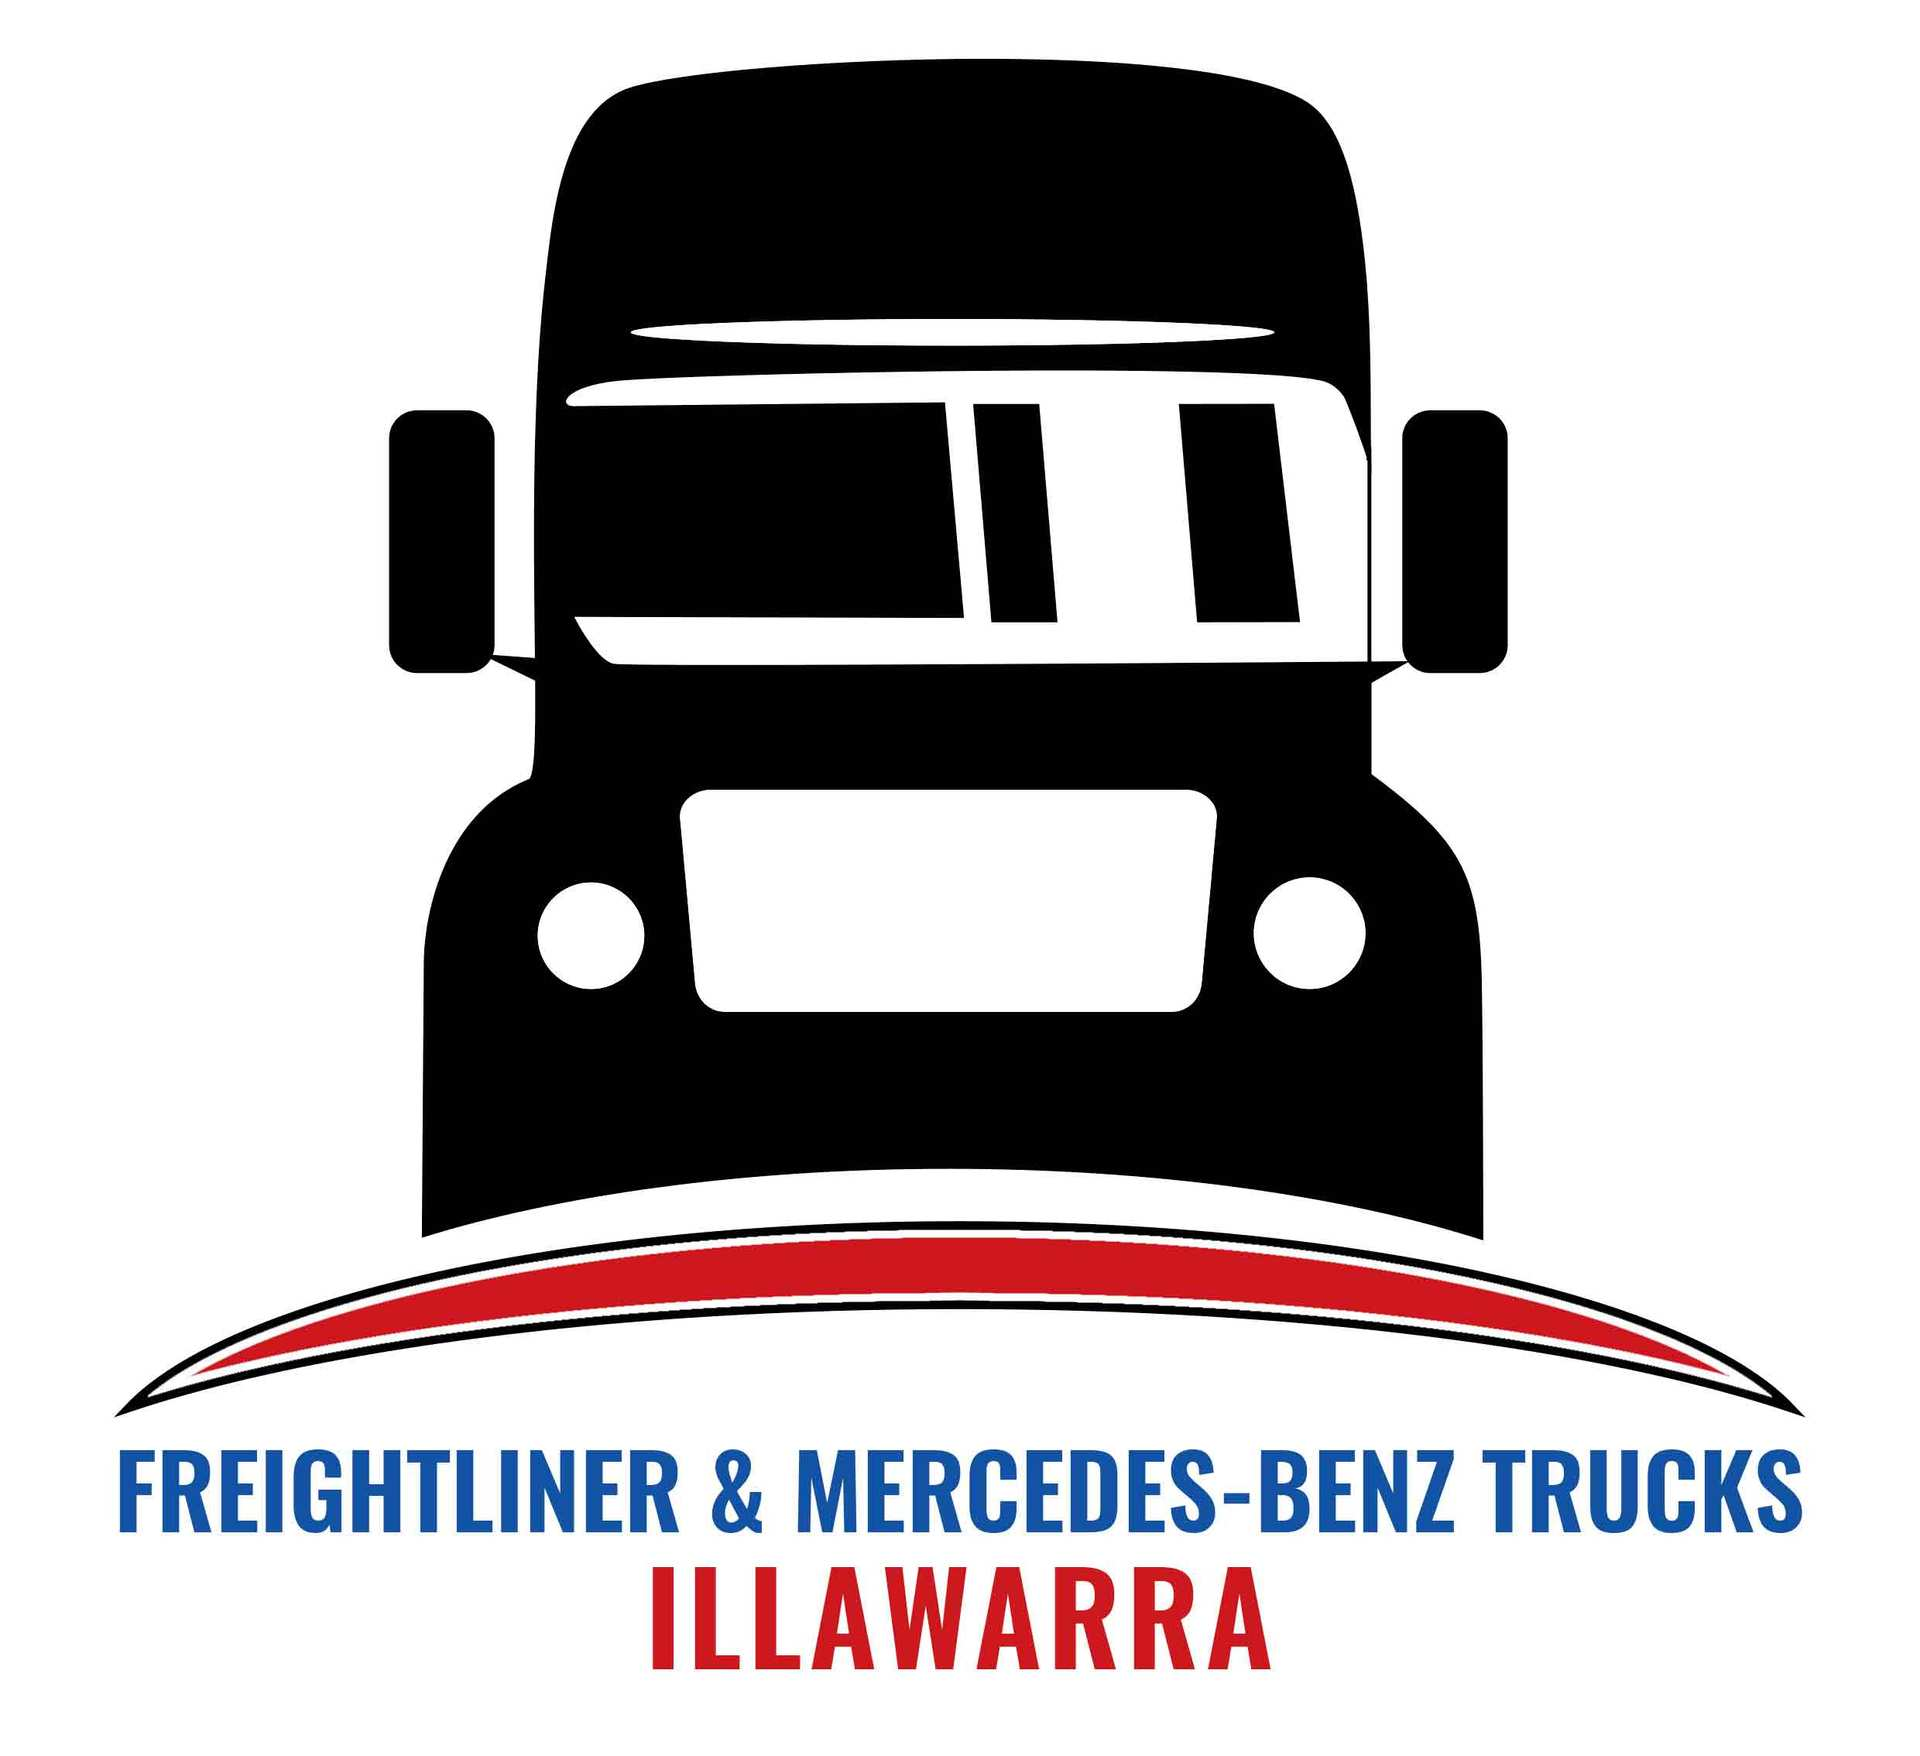 Truck service for freightliner mercedes benz trucks for Freightliner mercedes benz